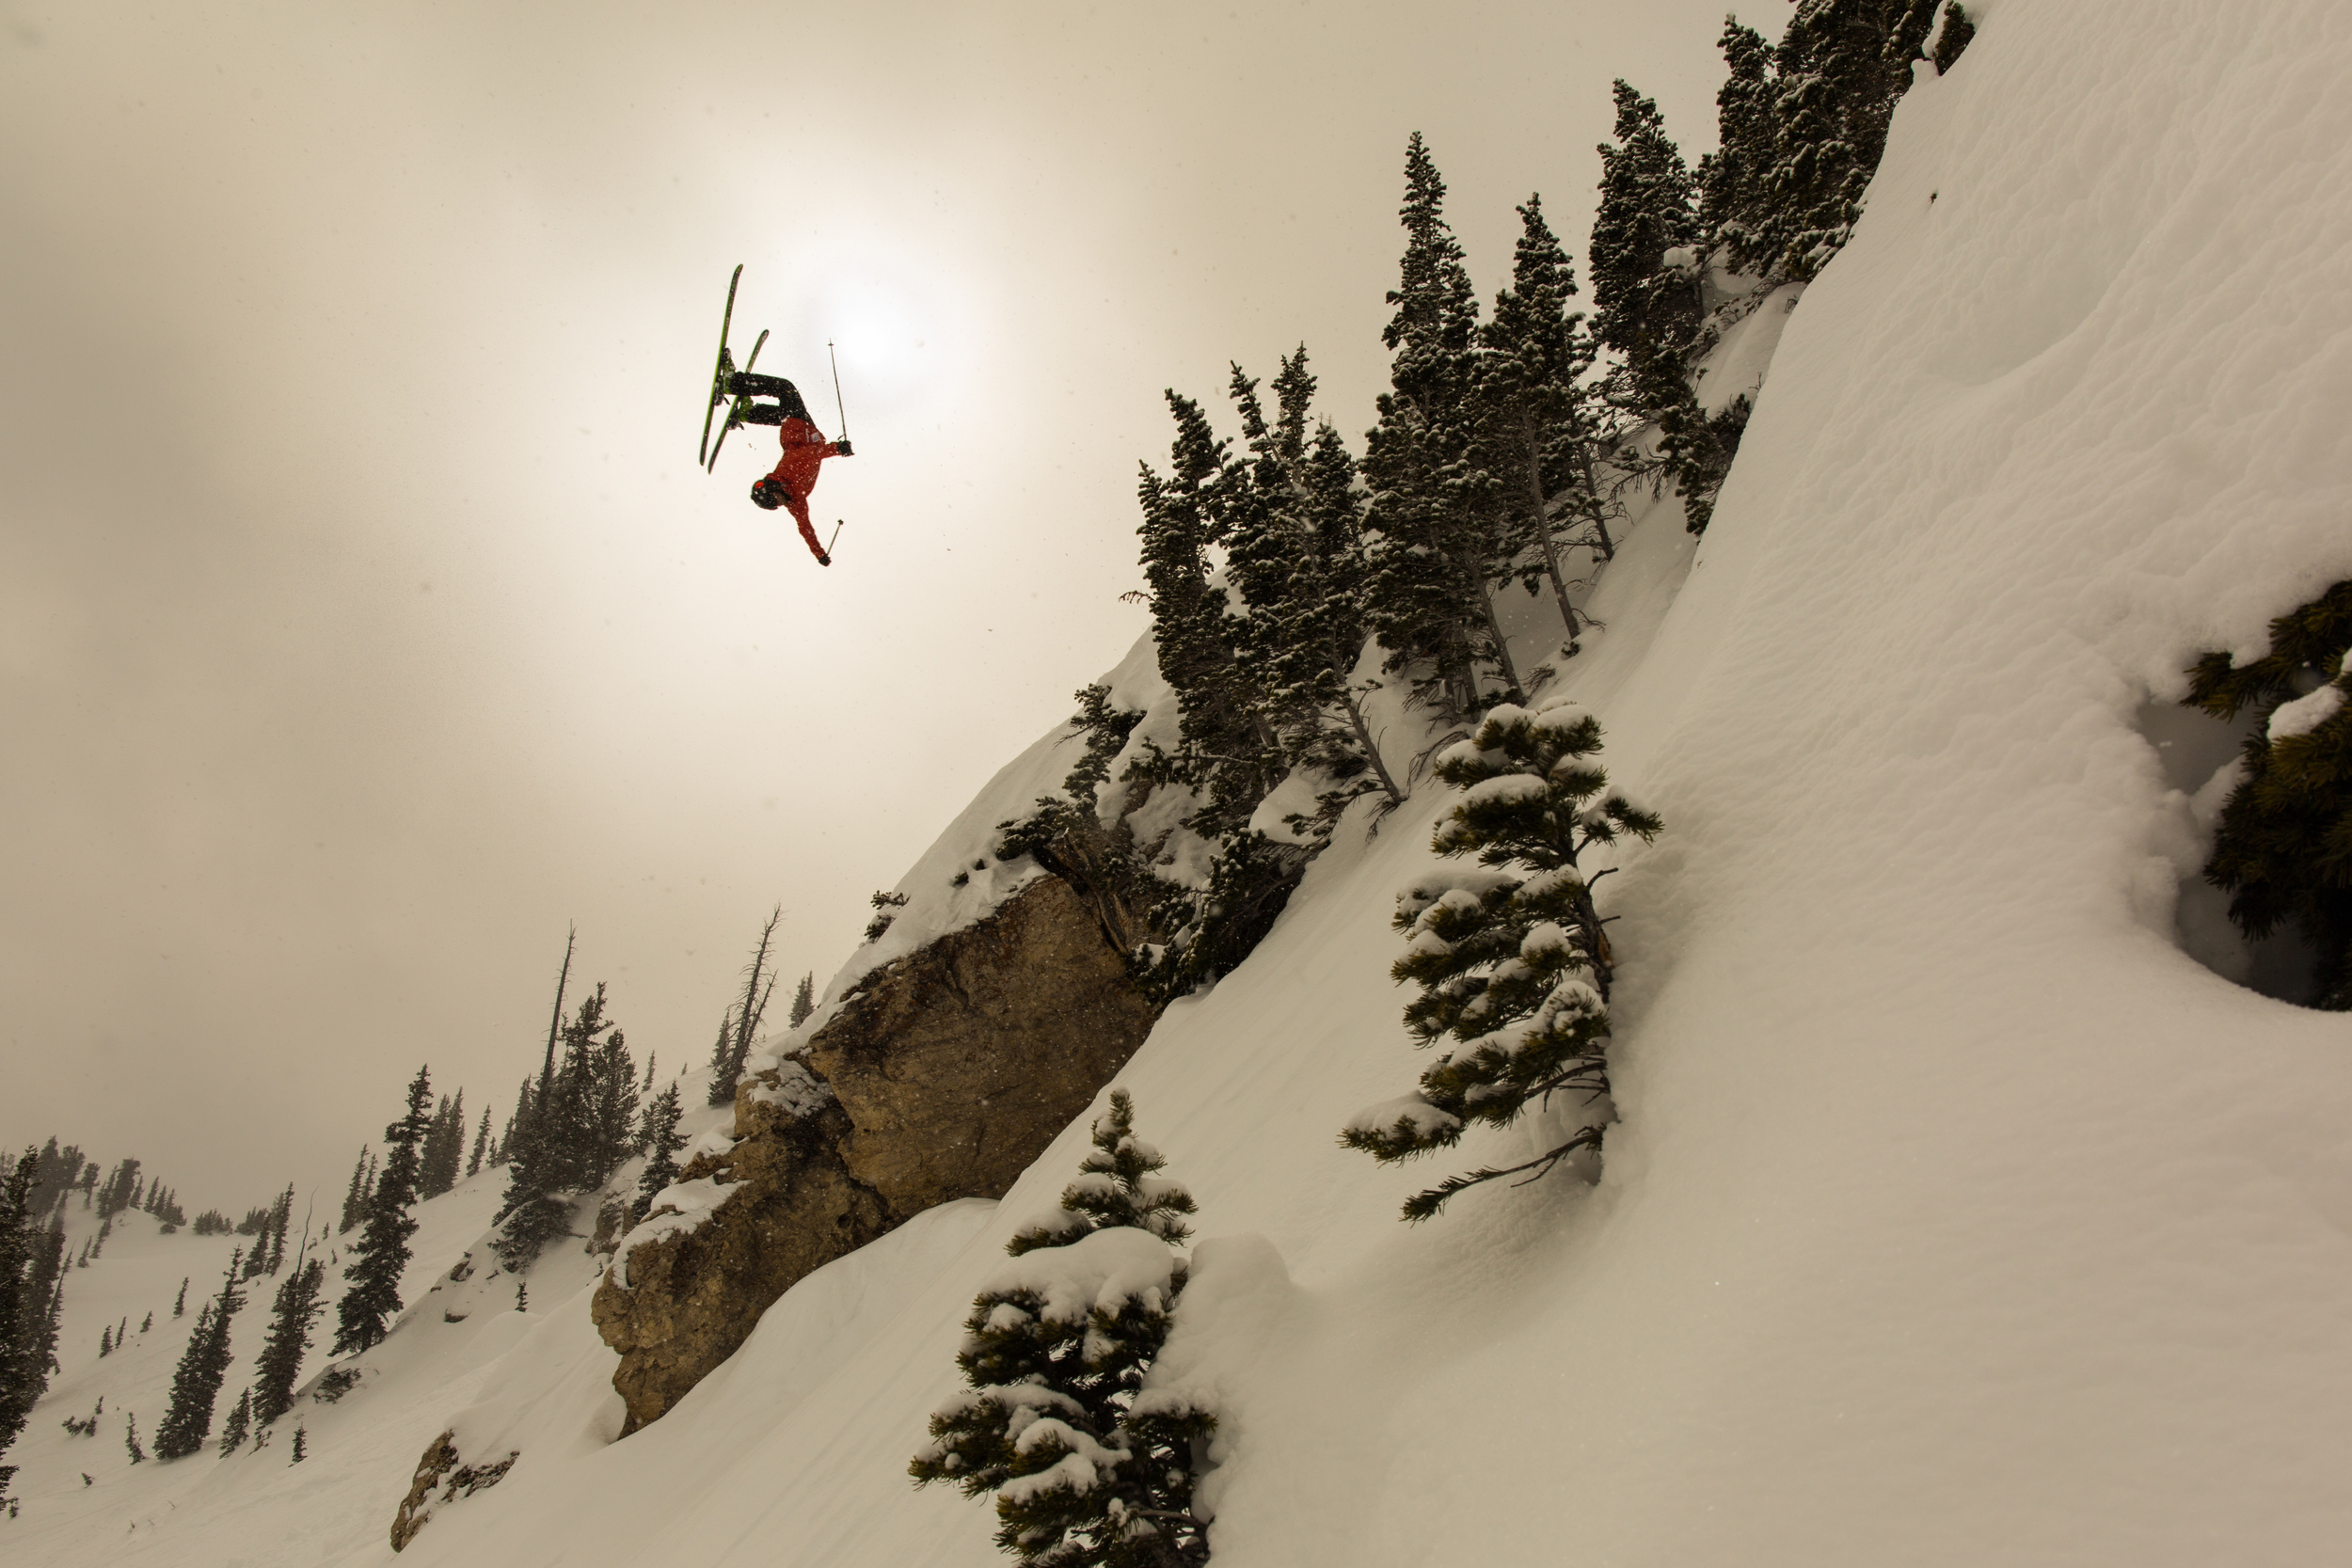 Tyson Rider backflipping C-Frame in the Alta Backcountry